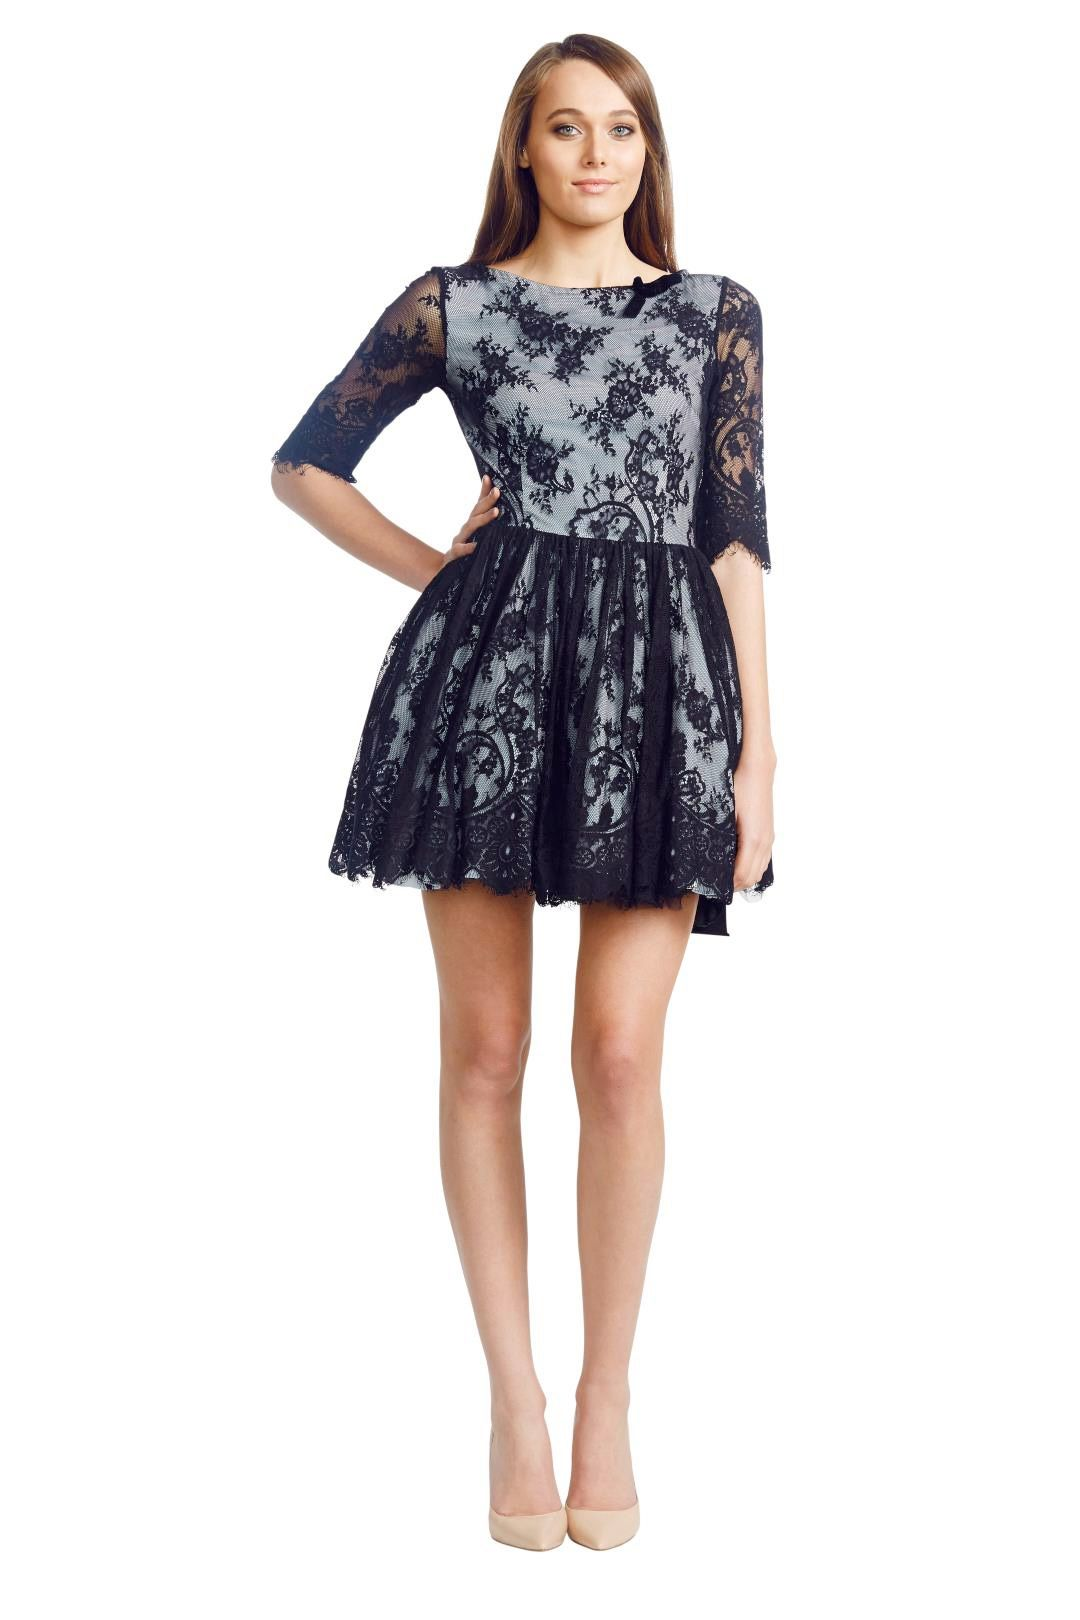 Wheels & Dollbaby - Picnic Dress - Black - Front